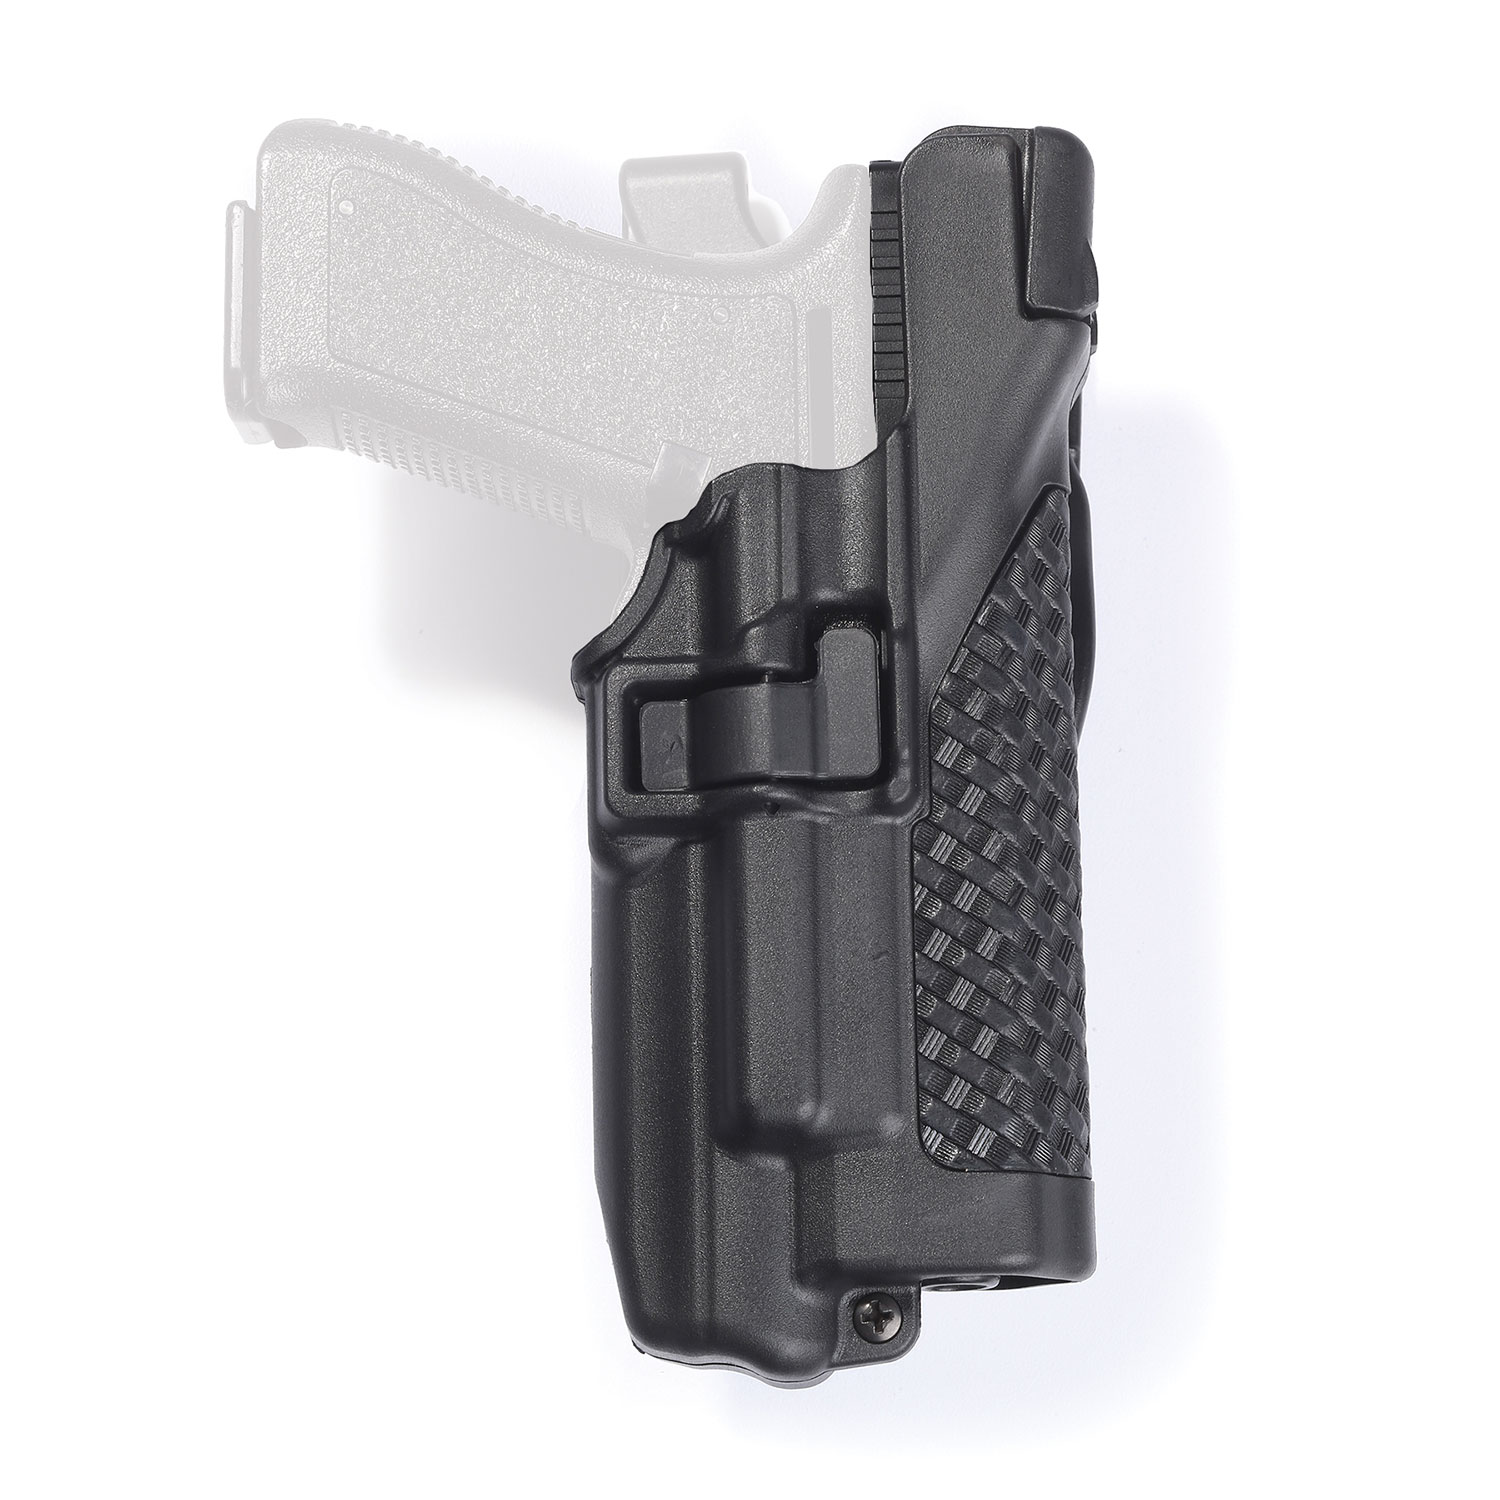 BLACKHAWK! SERPA Level III Light Bearing Holster